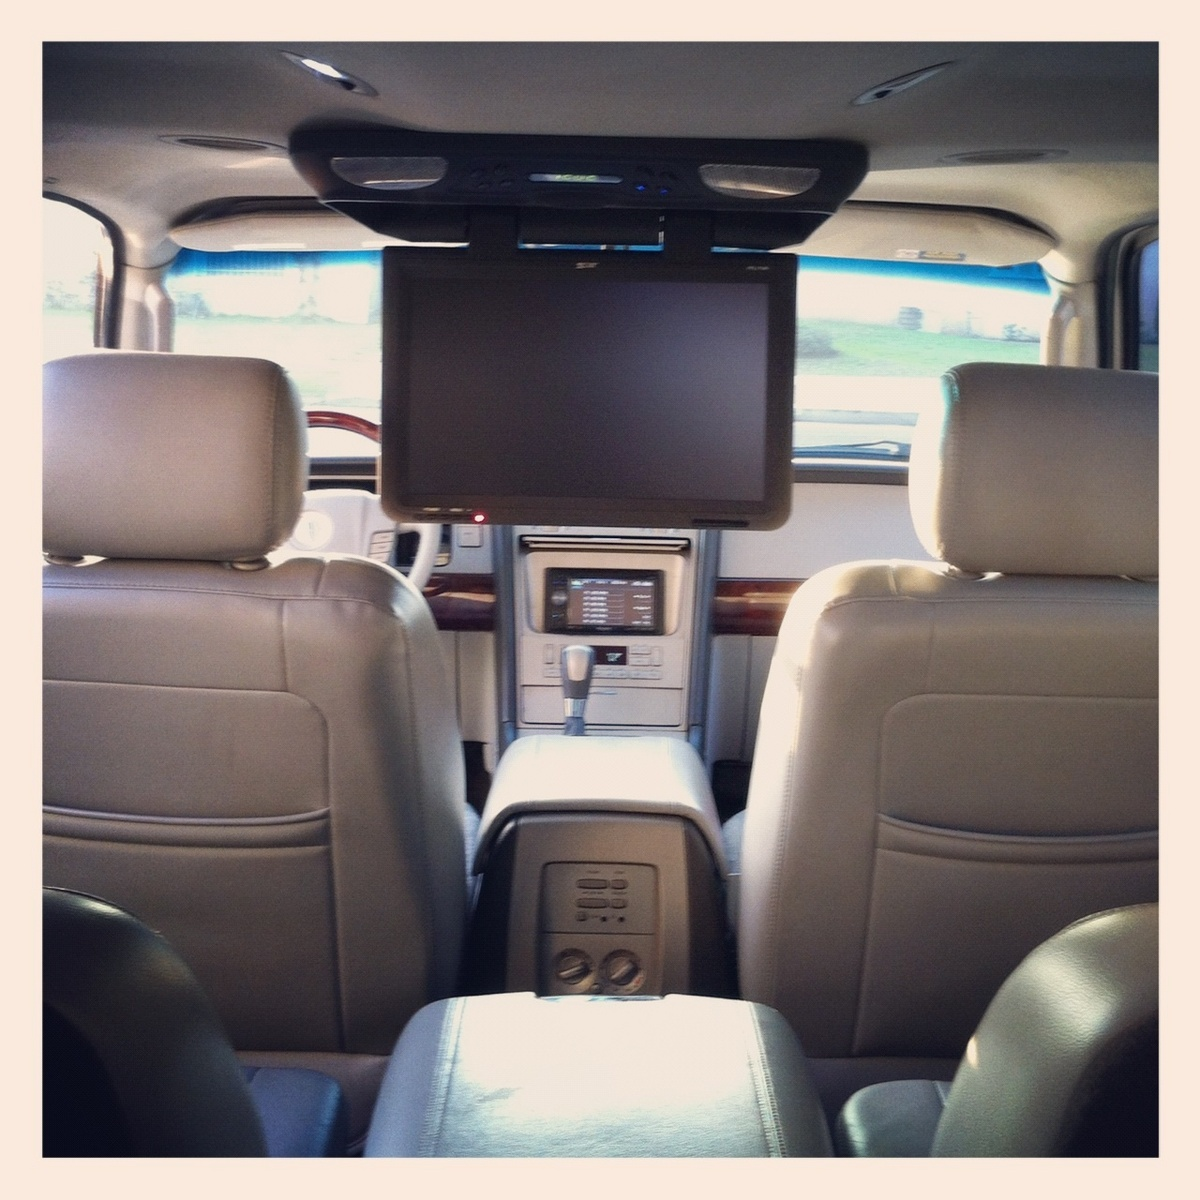 2004 lincoln navigator interior pictures cargurus. Black Bedroom Furniture Sets. Home Design Ideas